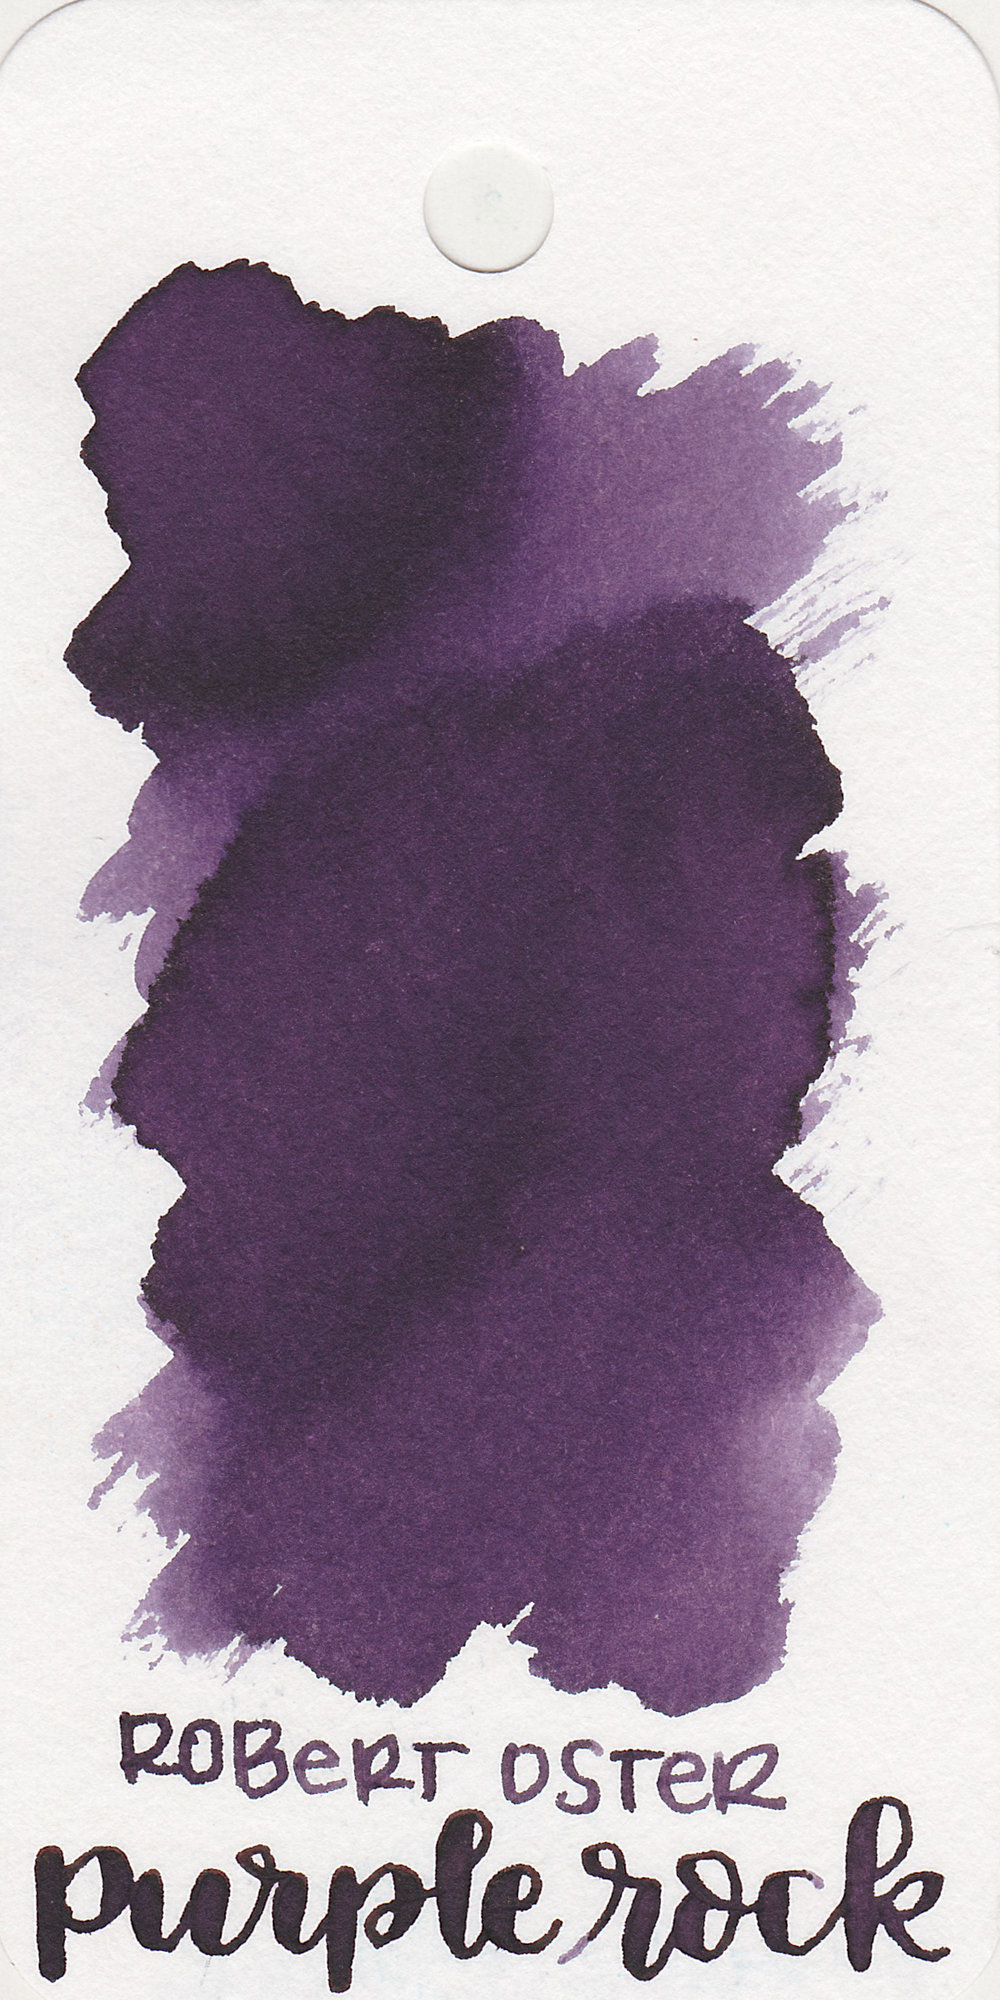 The color: - Purple Rock is one of those inks that looks a little bit different on every paper. On the Col-o-ring it looks more medium purple.